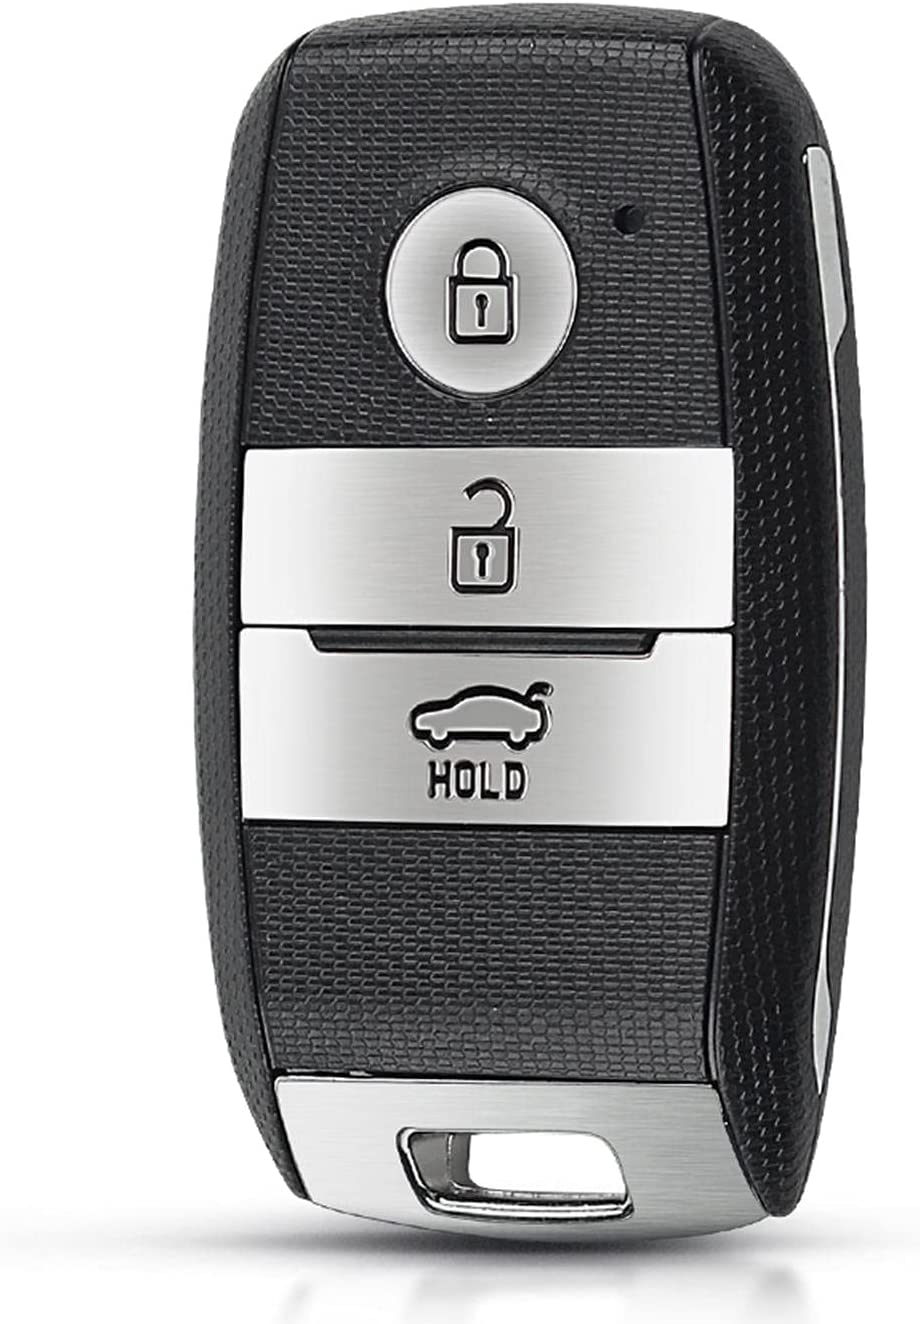 FLJKCT Right Smart Chicago Mall Key Blade Car security She Accessories Replacement